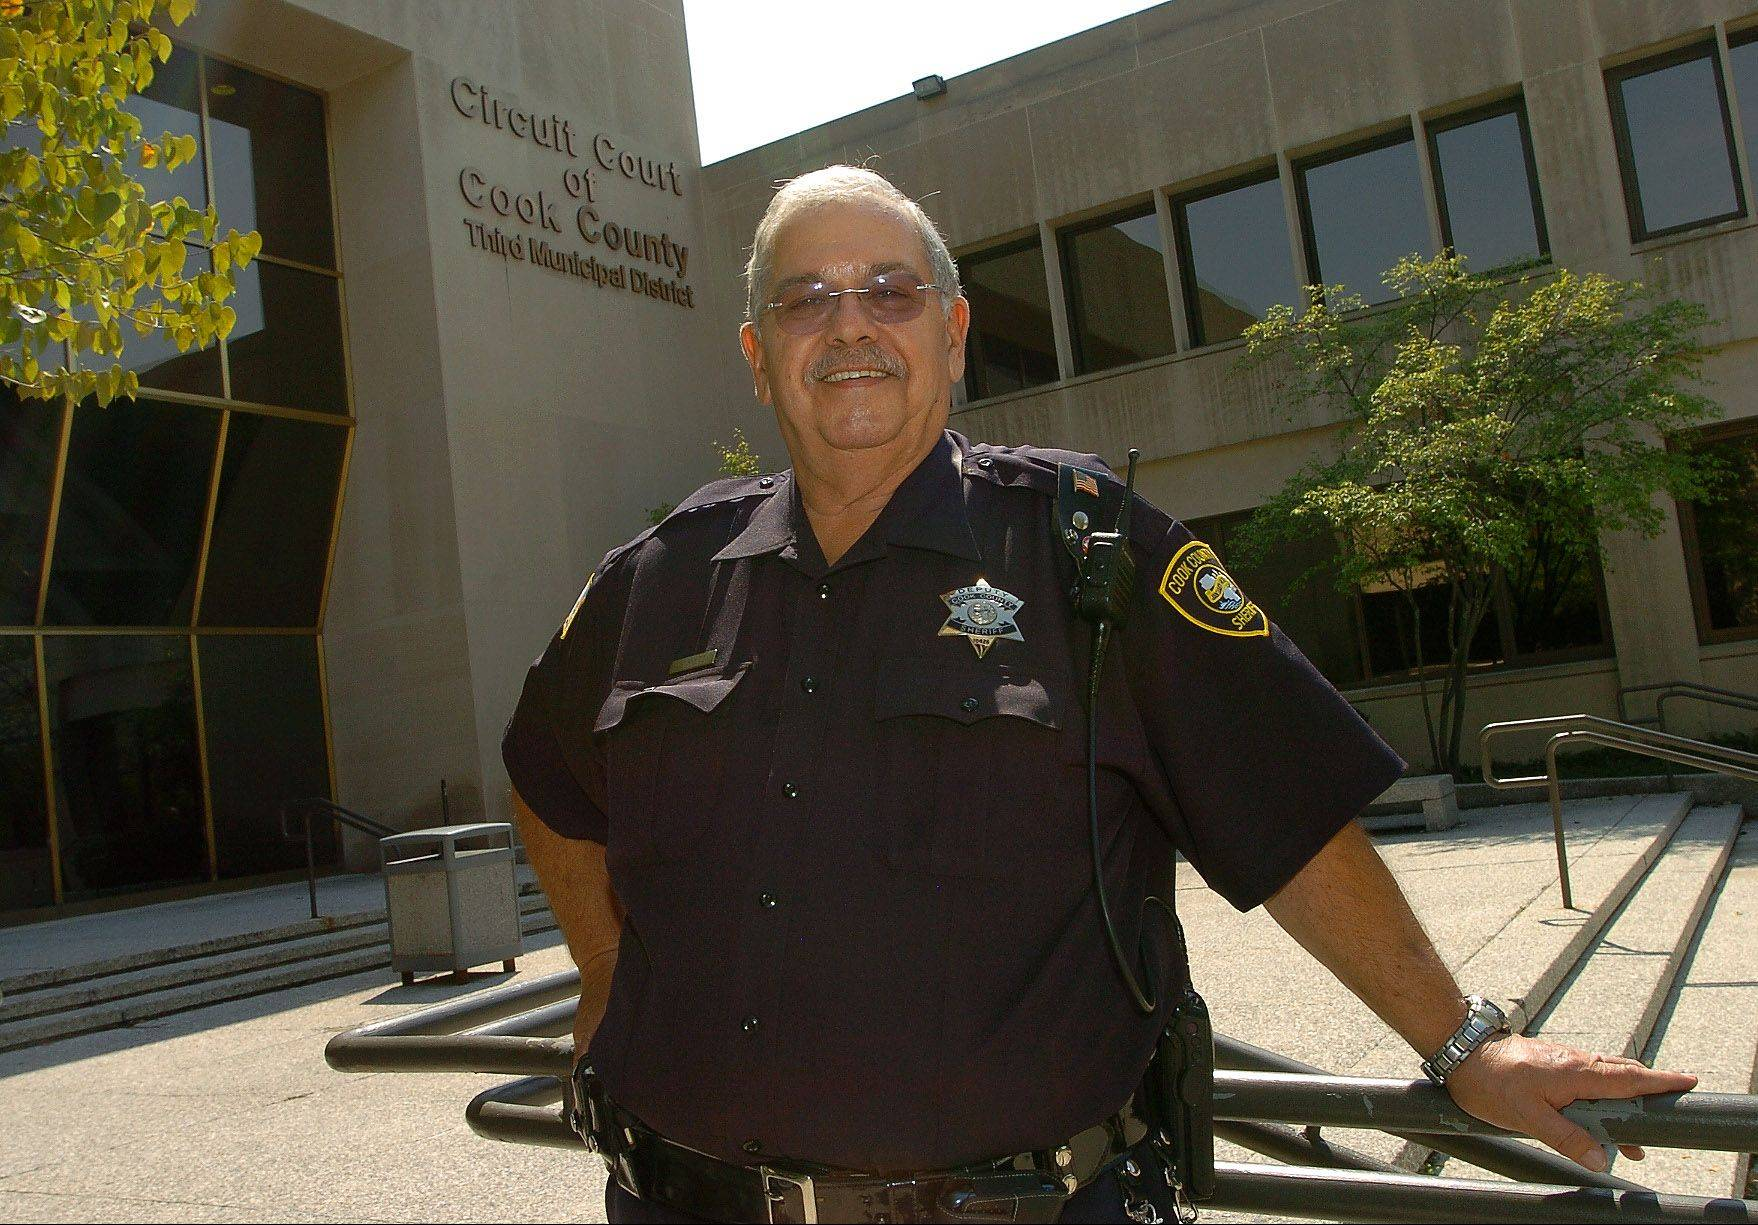 Cook County Sheriffu0027s Deputy Stan Schultz Retired Friday After 46 Years In  Law Enforcement, The